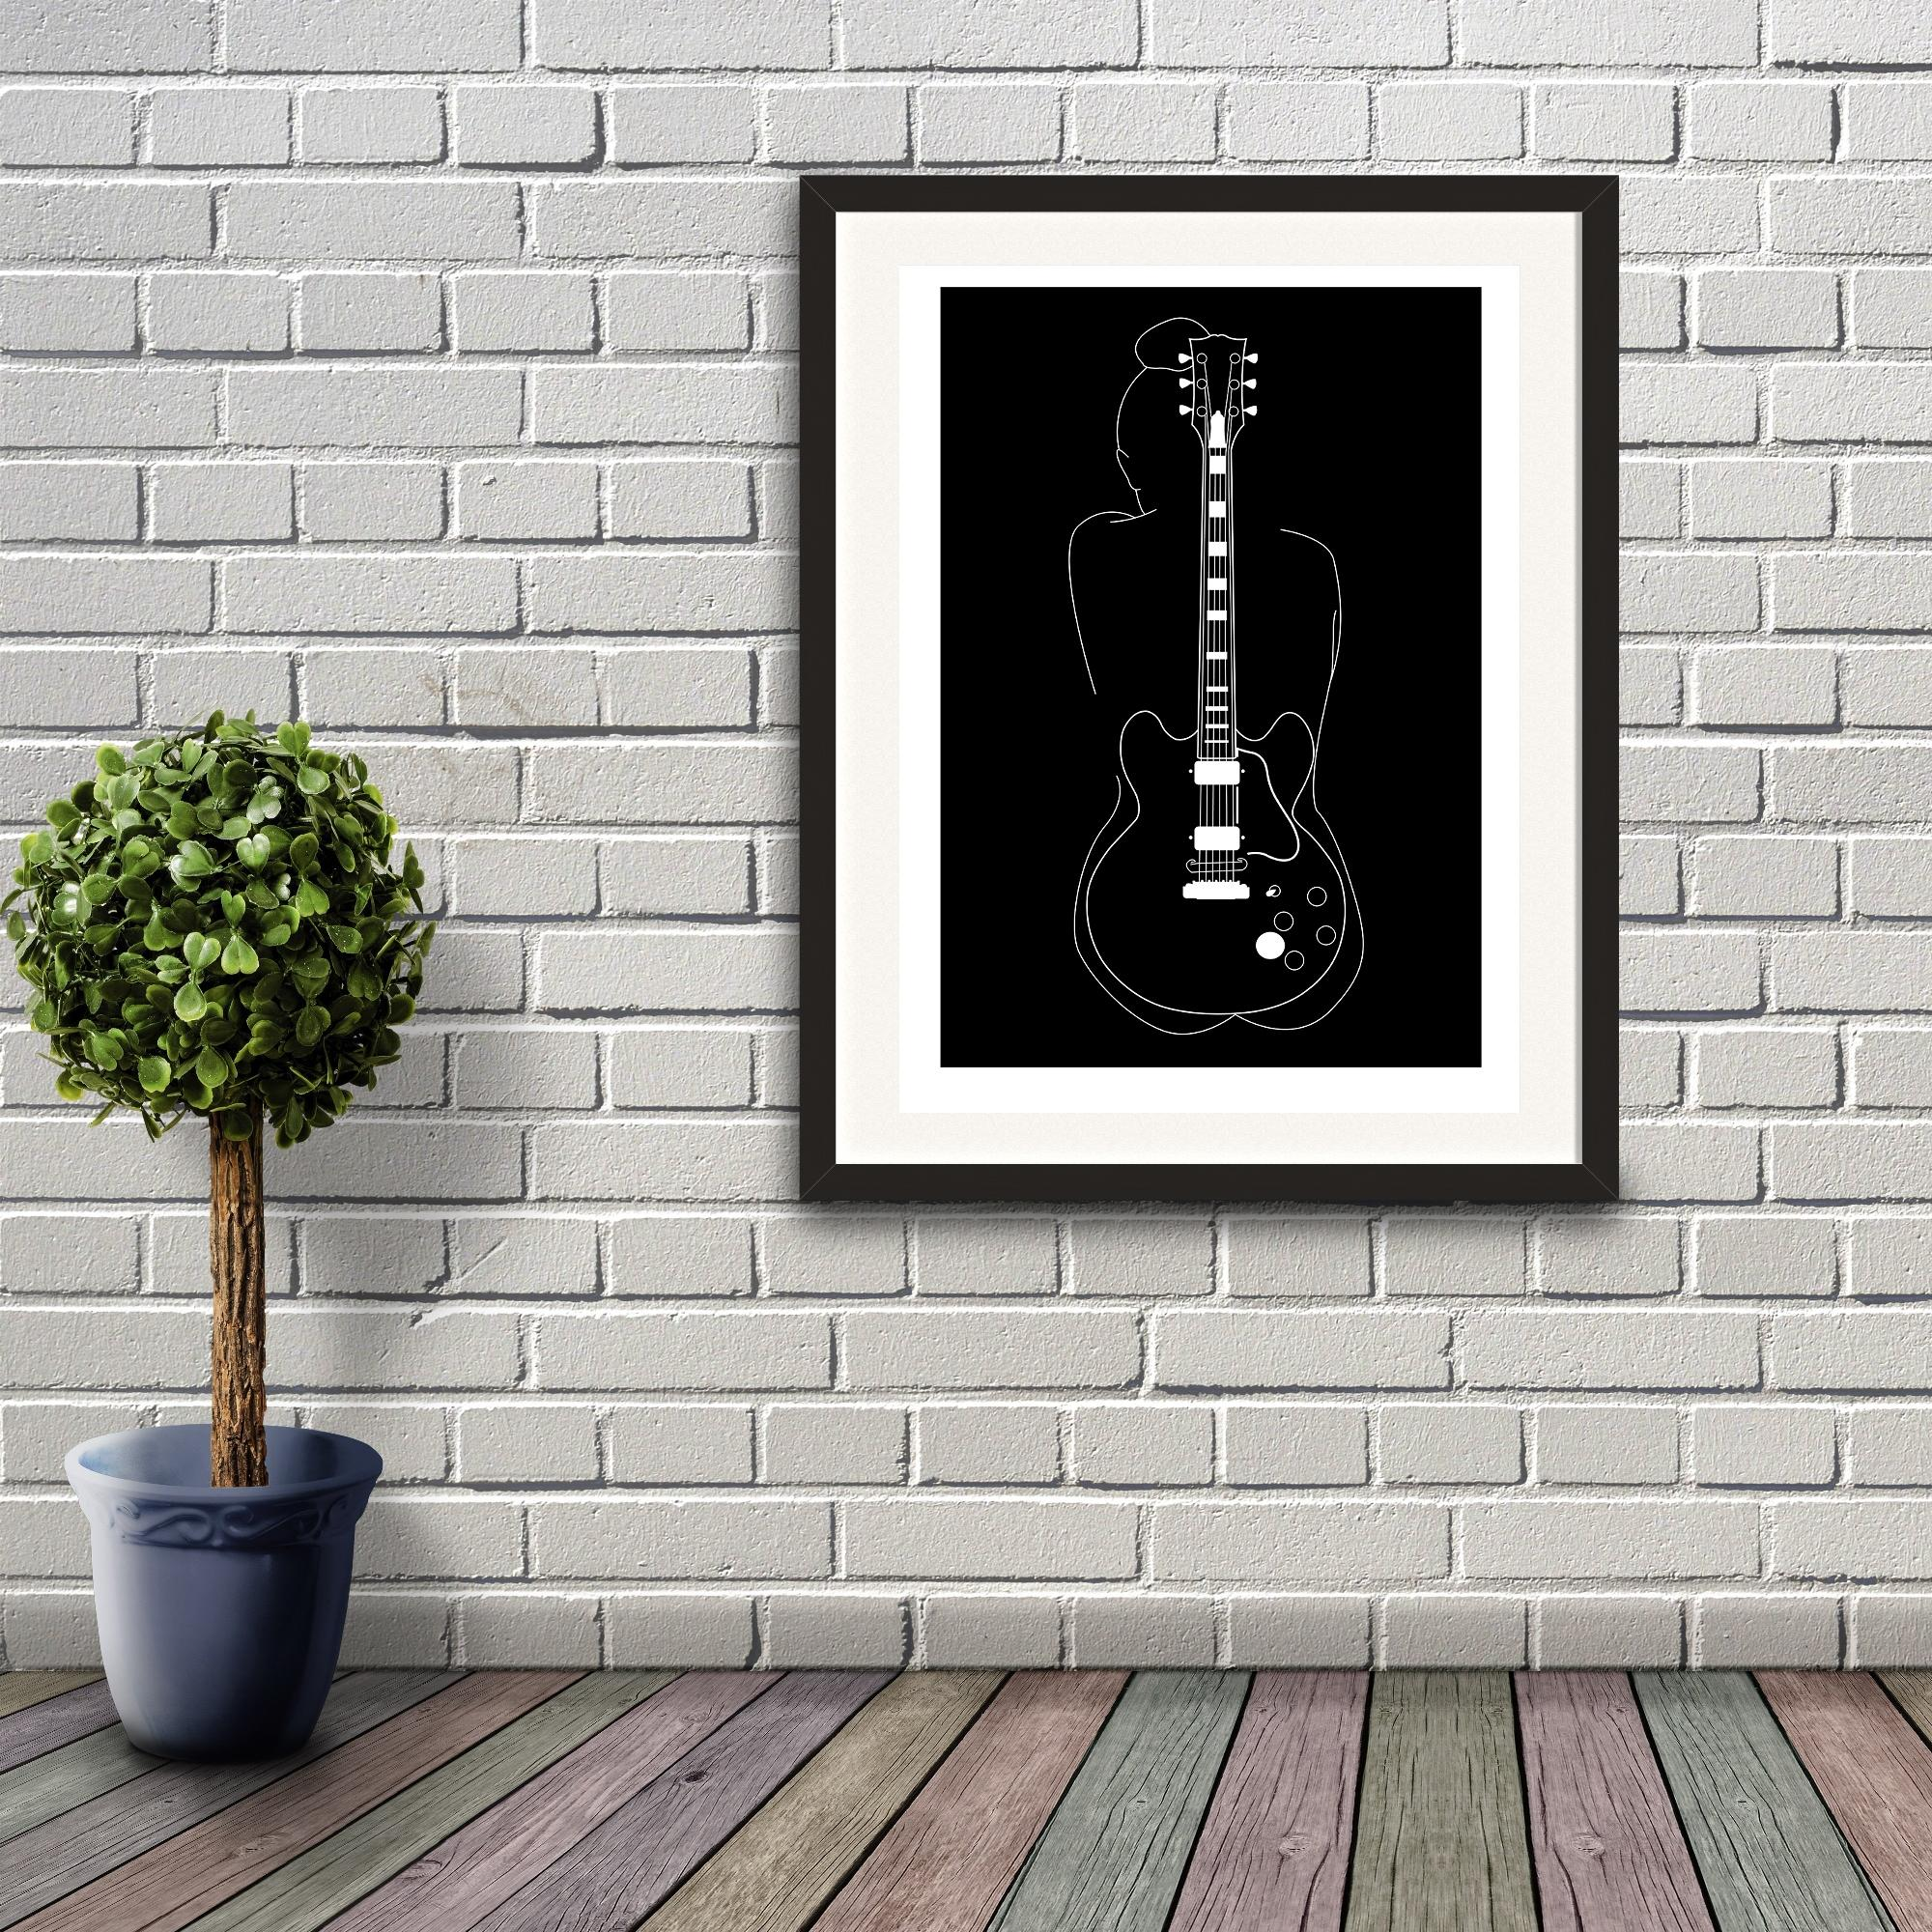 A digital illustration by Clarrie-Anne giclée printed on eco fine art paper titled Lucille. Featuring a white line outline of a female and the Gibson guitar of BB King with a black background. Mock up print image shown on an interior brick wall.